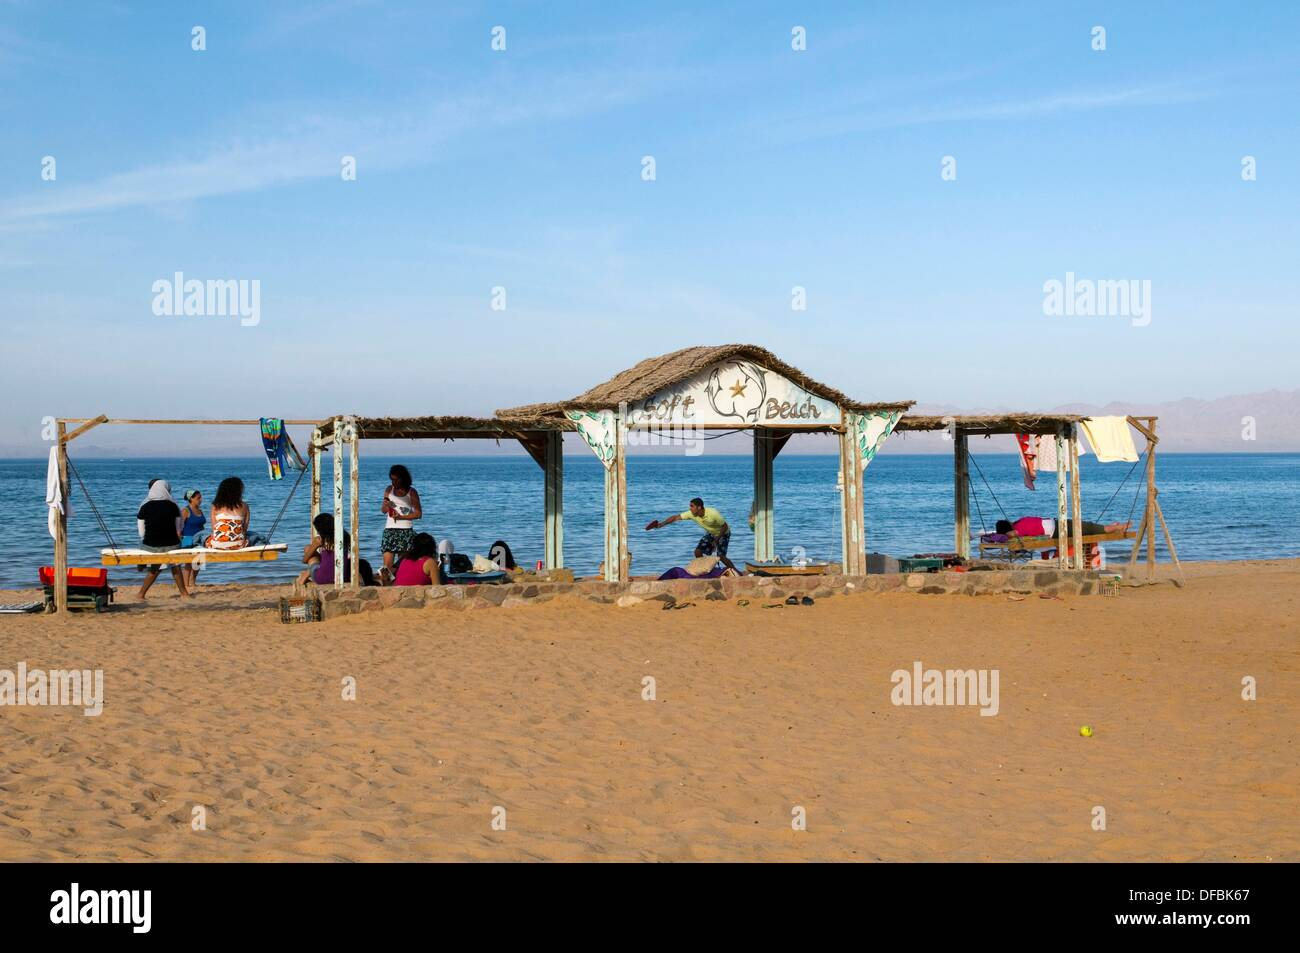 tourists playing on the beach next to the Red Sea in the Sinai Desert of Egypt - Stock Image